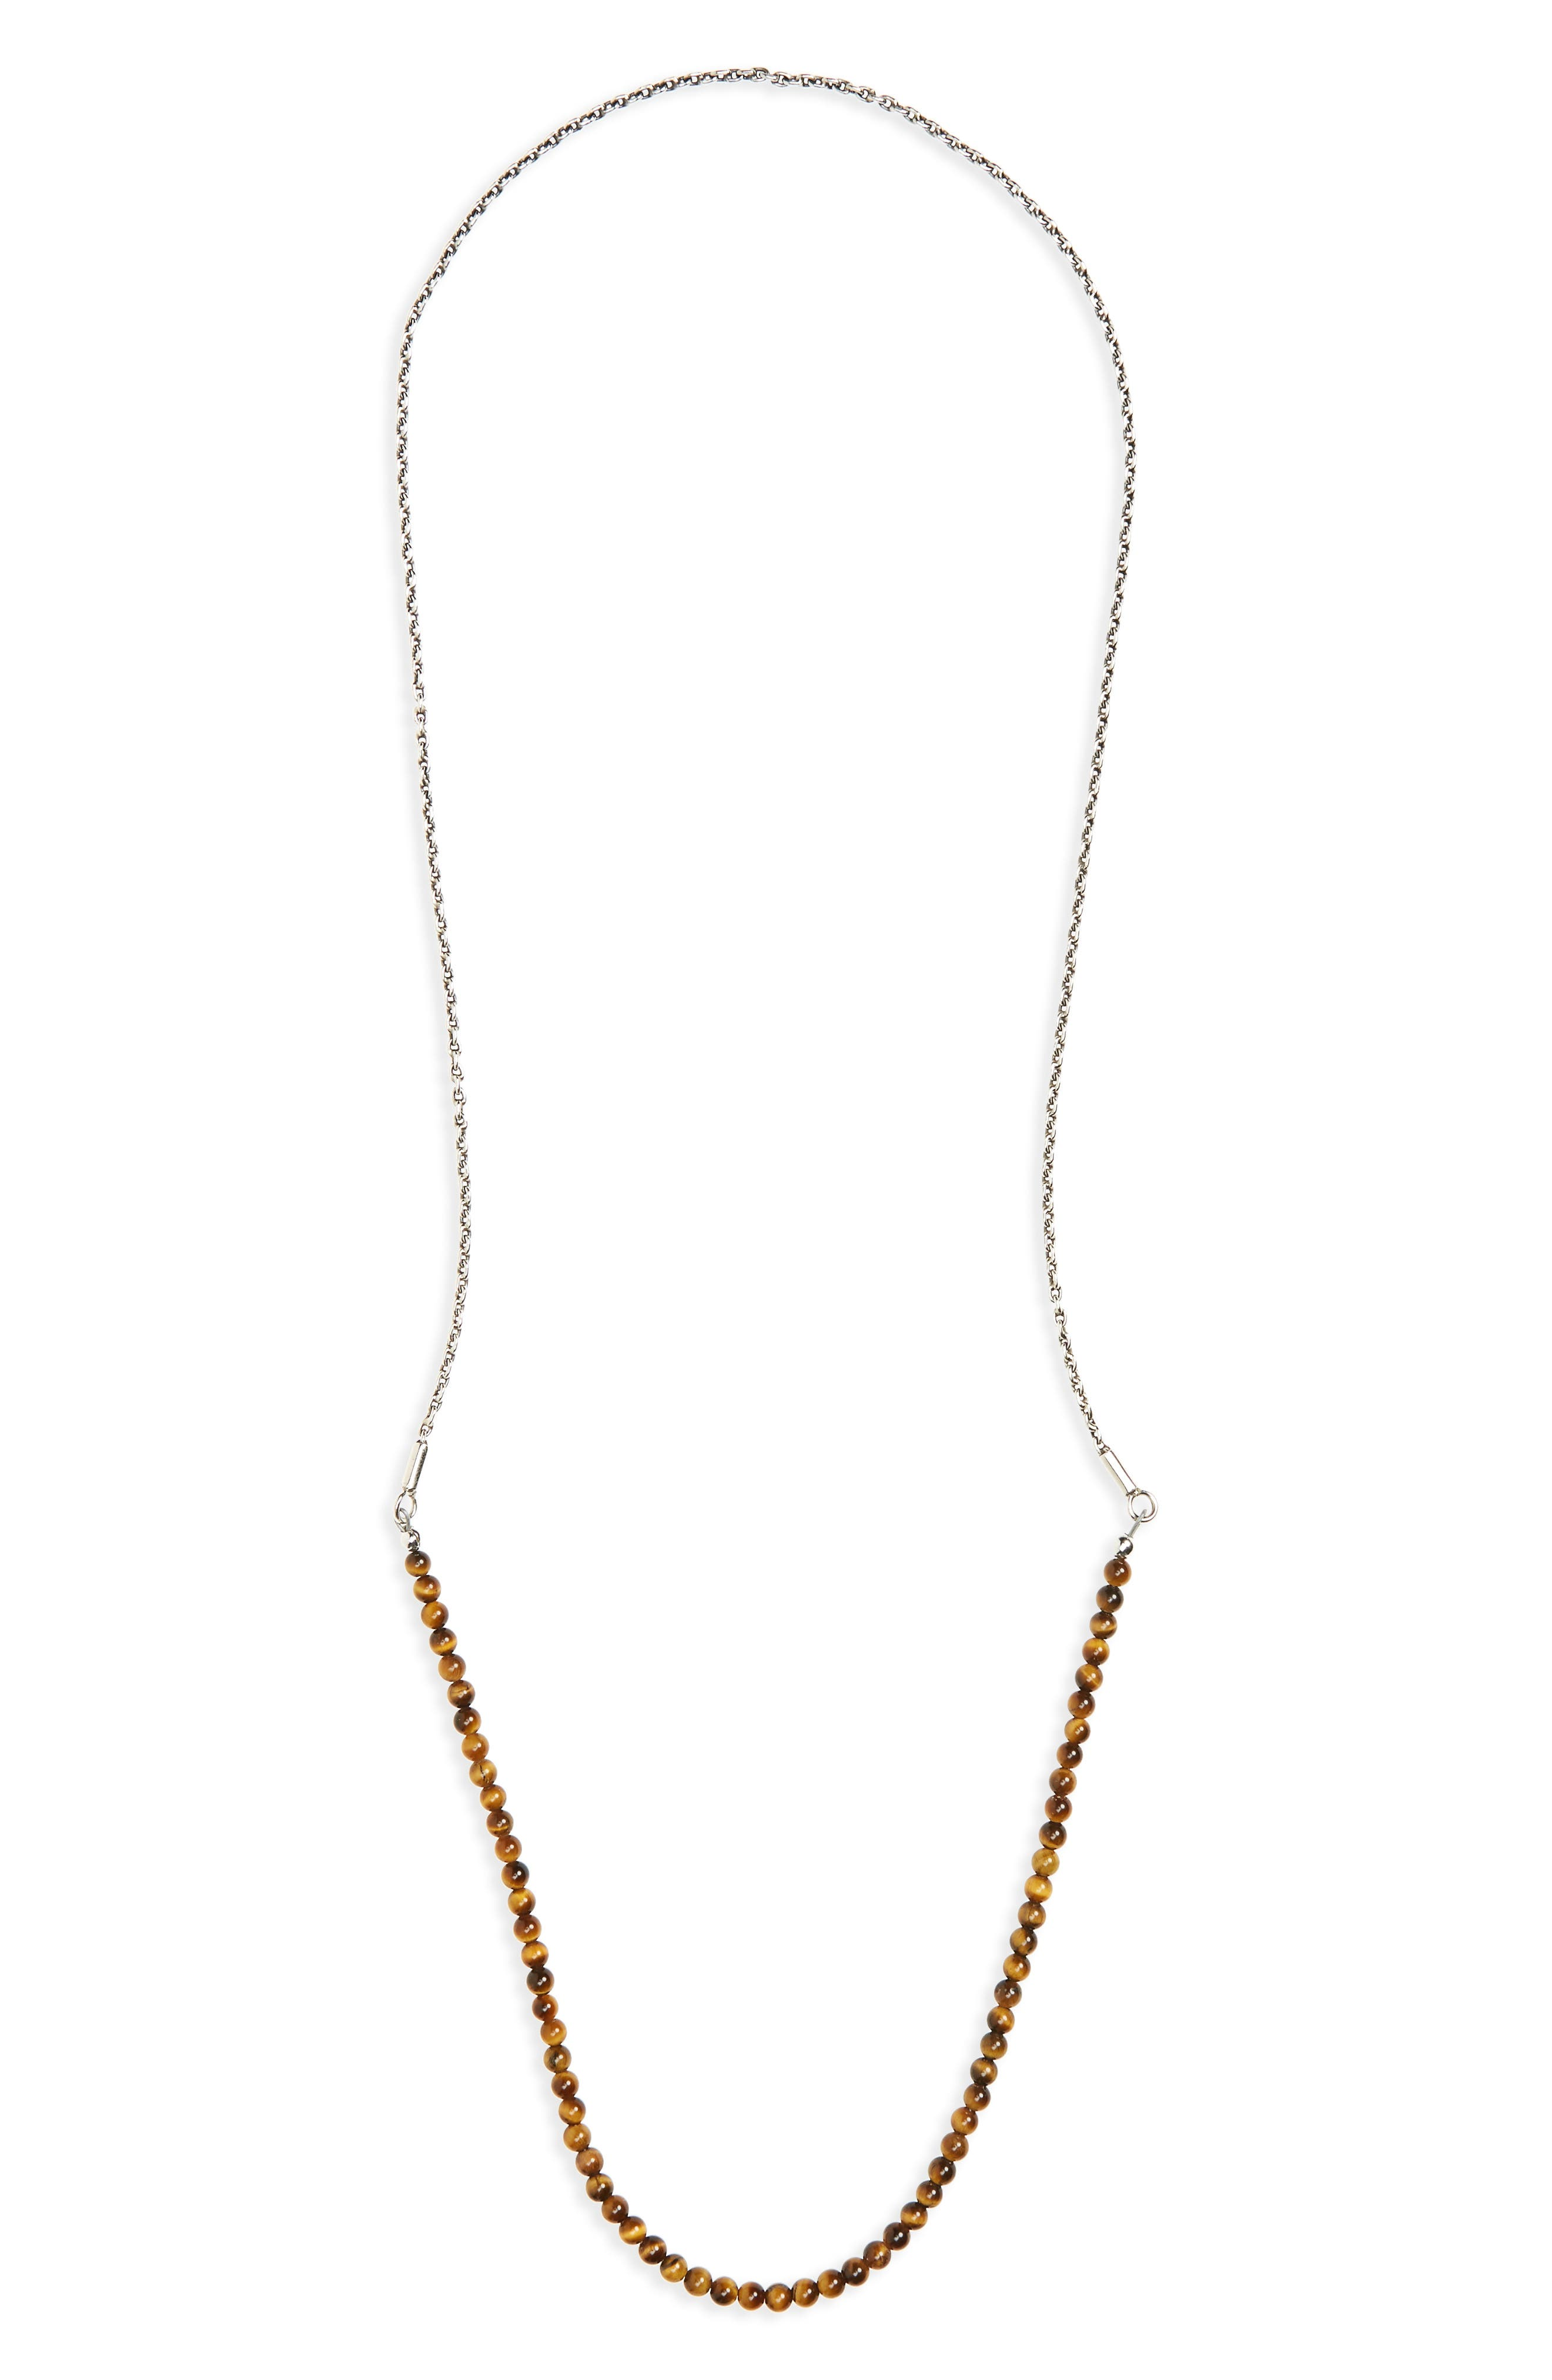 Stone & Sterling Silver Necklace,                             Main thumbnail 1, color,                             Tiger Eye